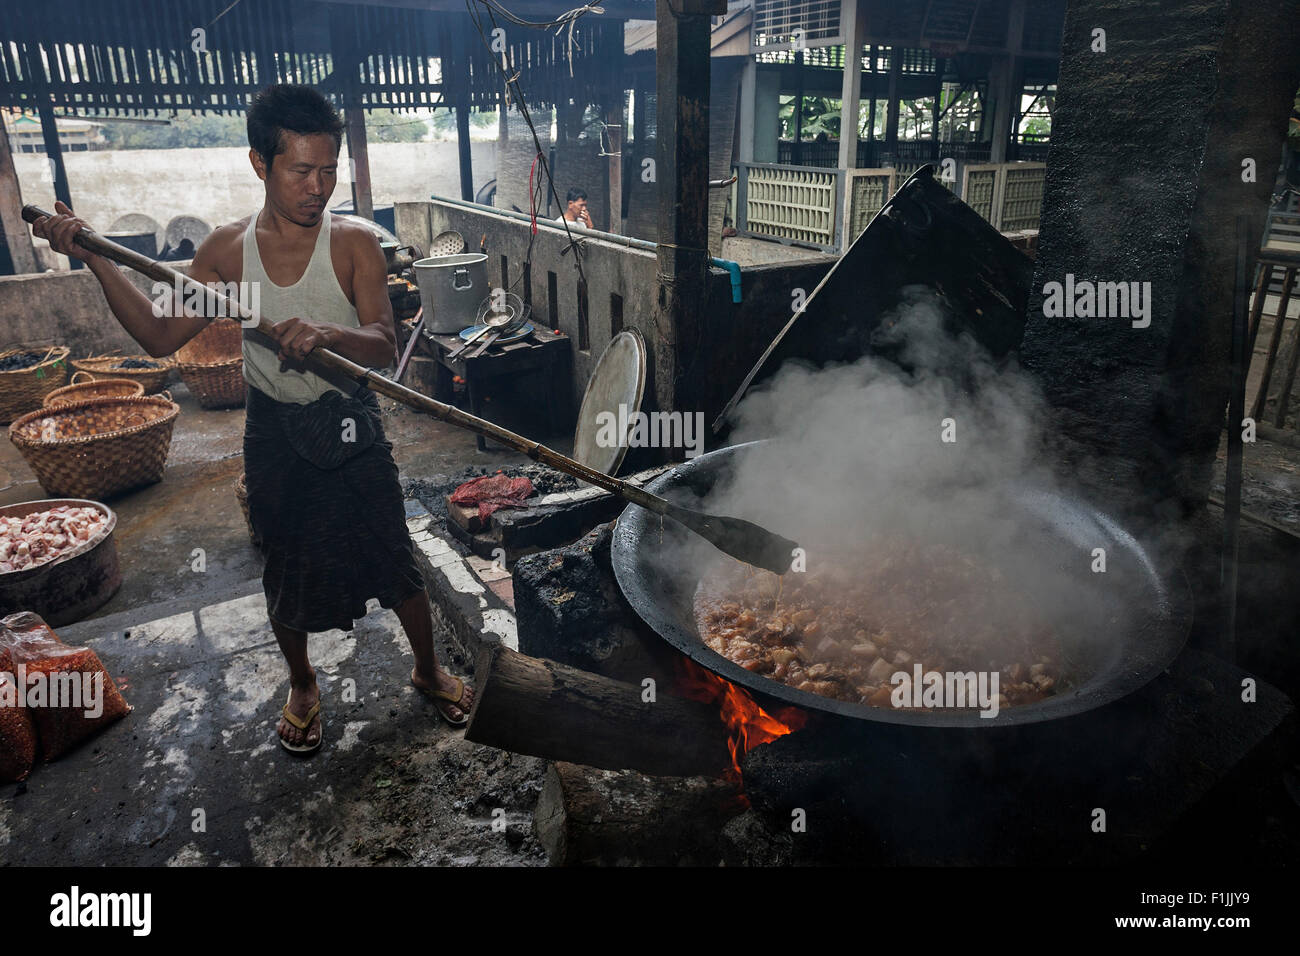 Cooking over an open fire, preparing food for the monks, catering in Mahagandayon Monastery, Amarapura, Divison - Stock Image